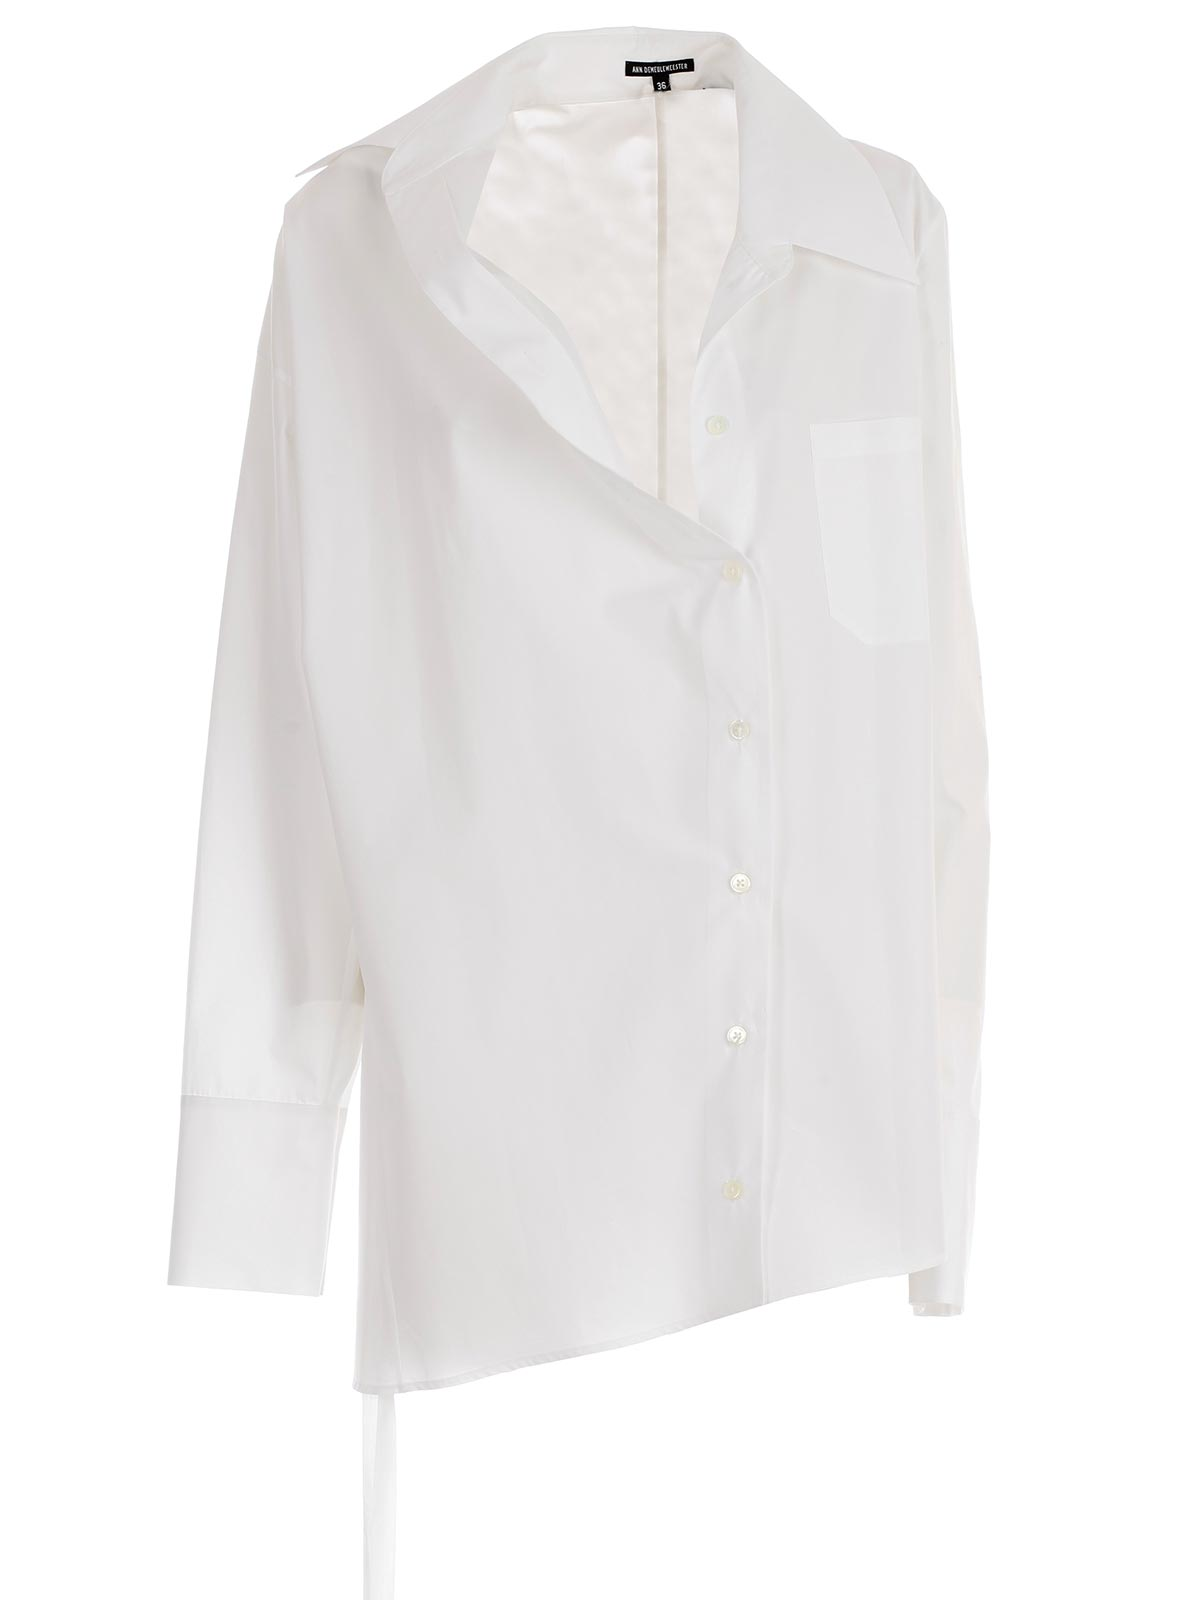 Picture of Ann Demeulemester Shirts